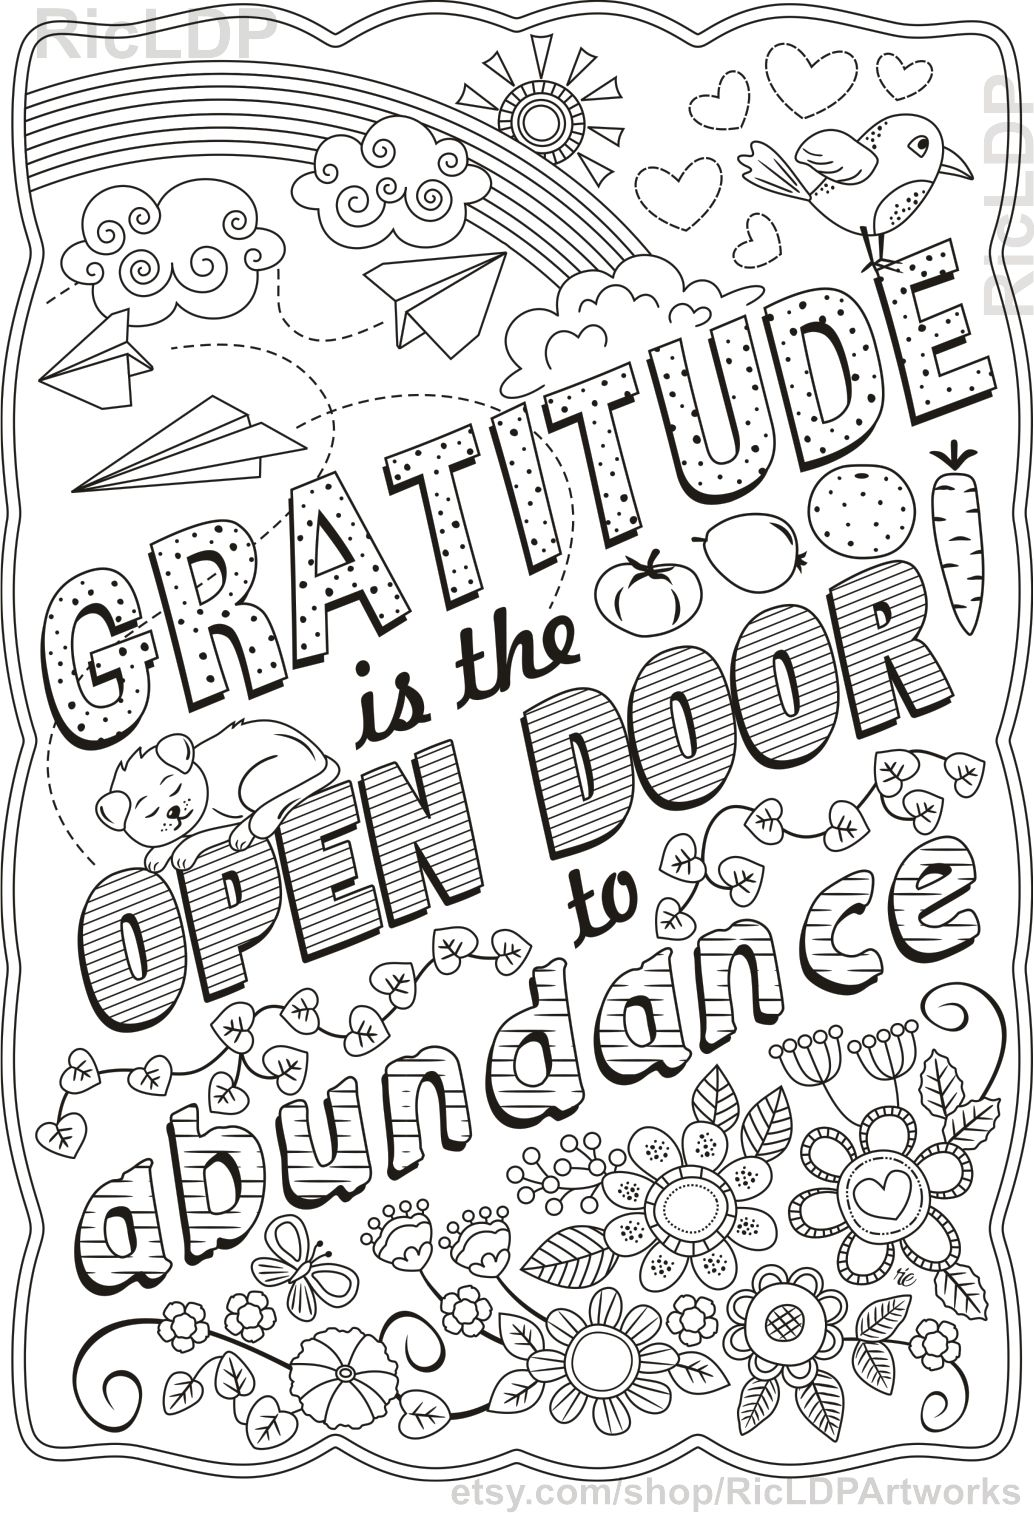 There Is Always Something To Be Thankful For Gratitude Etsy Quote Coloring Pages Love Coloring Pages Swear Word Coloring